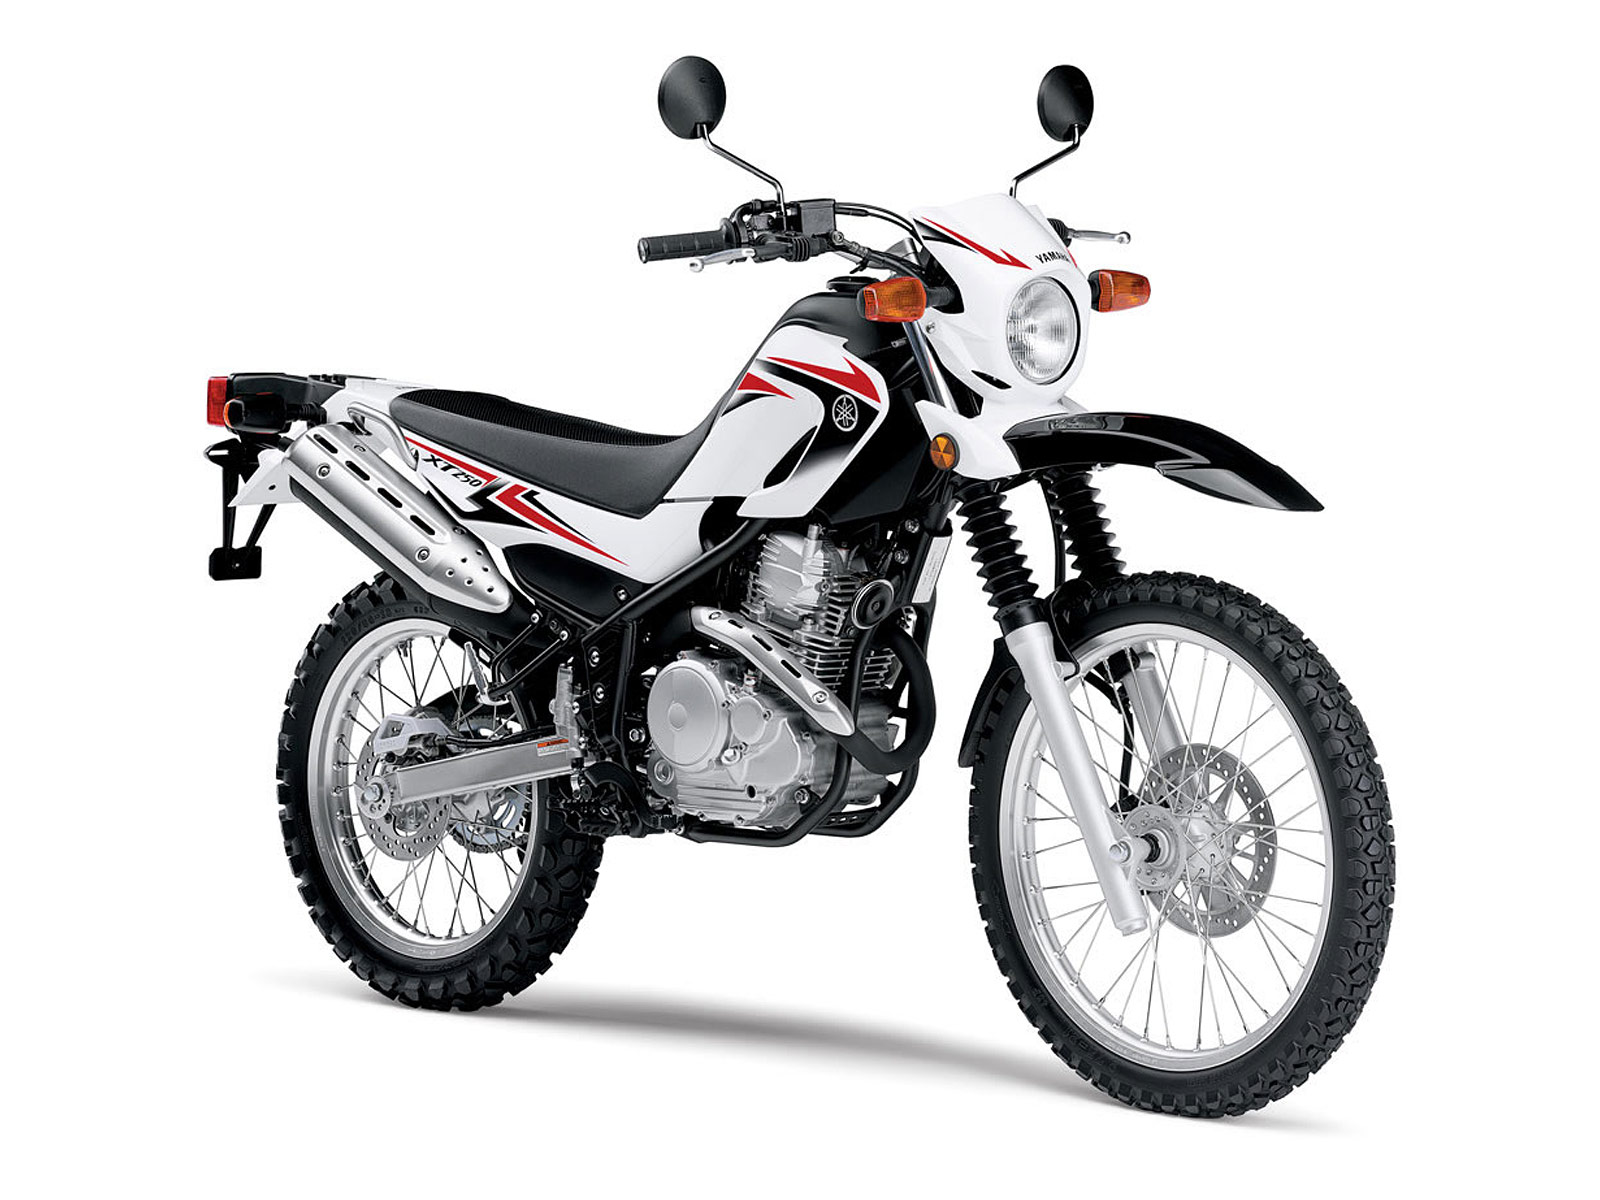 Yamaha Xt250 Motorcycle Photos